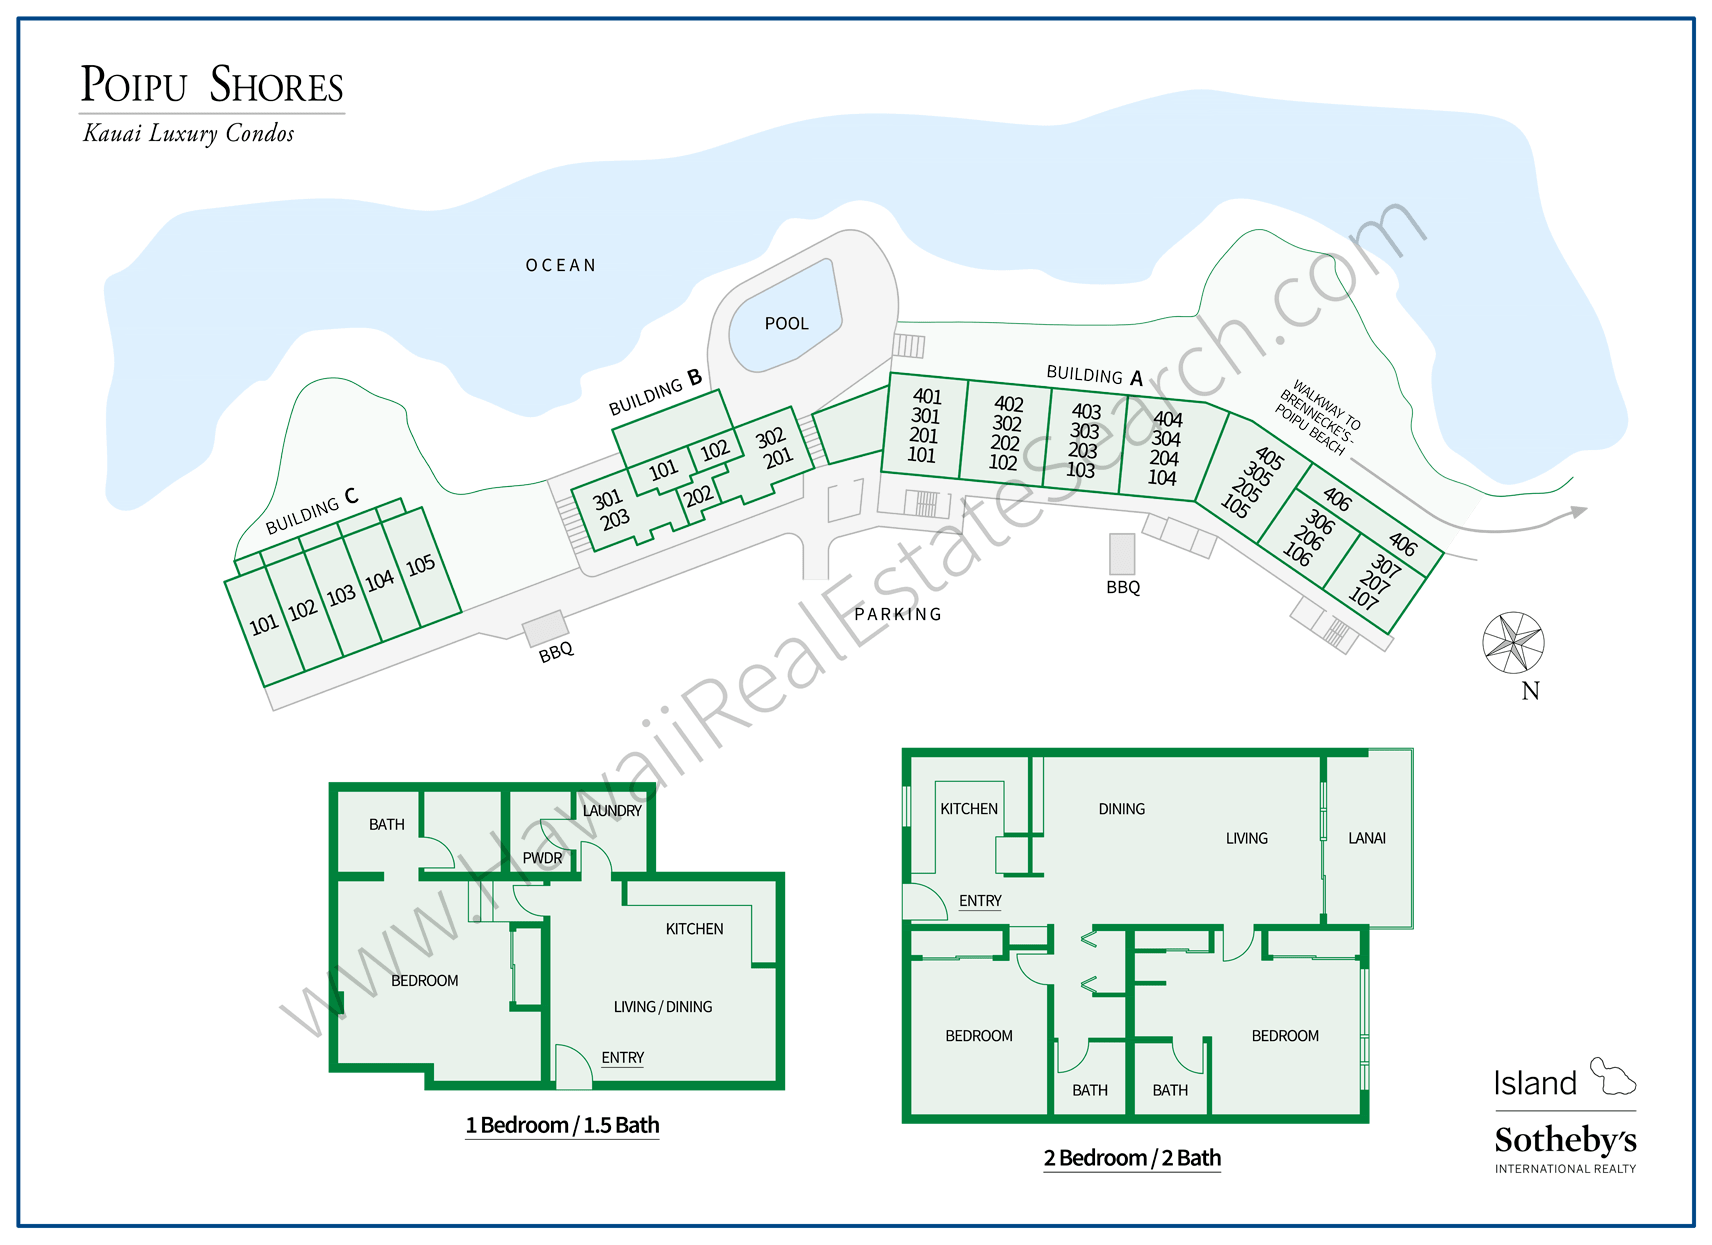 Poipu Shores Property Map